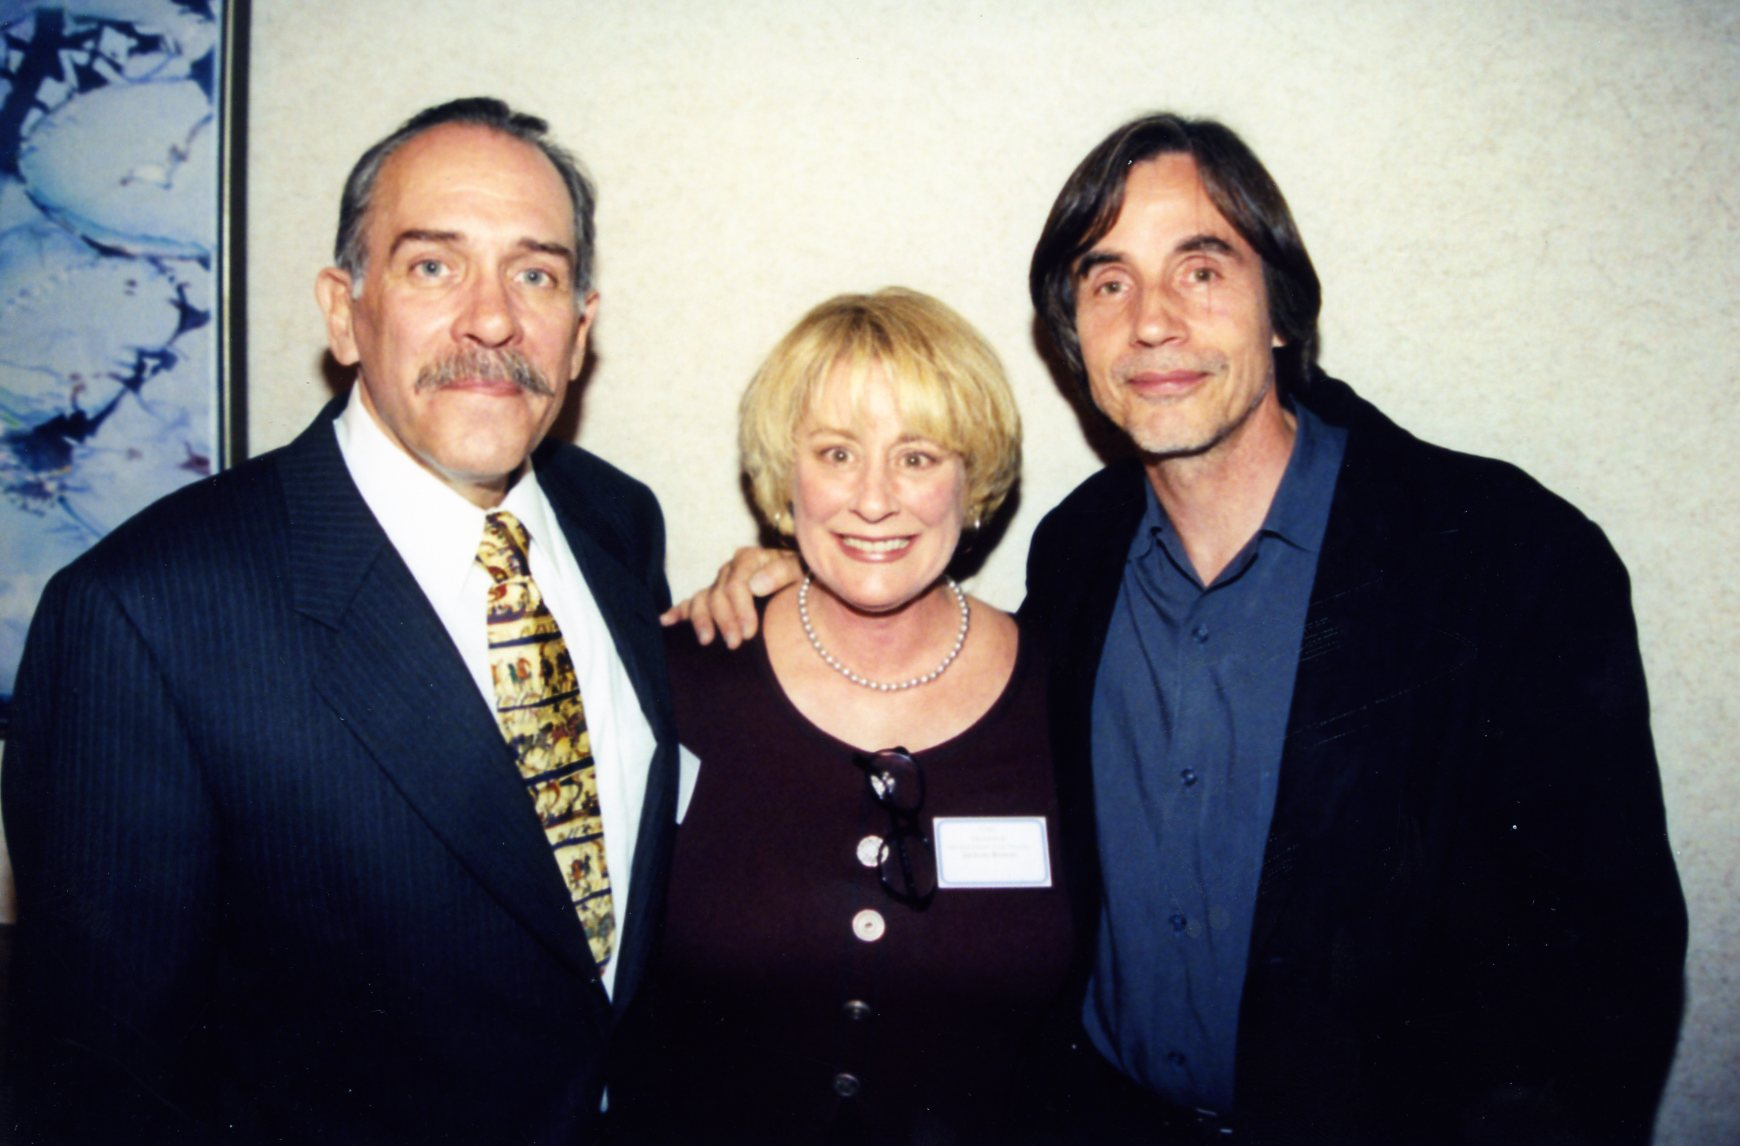 Thom and Gail Steinbeck with Jackson Browne